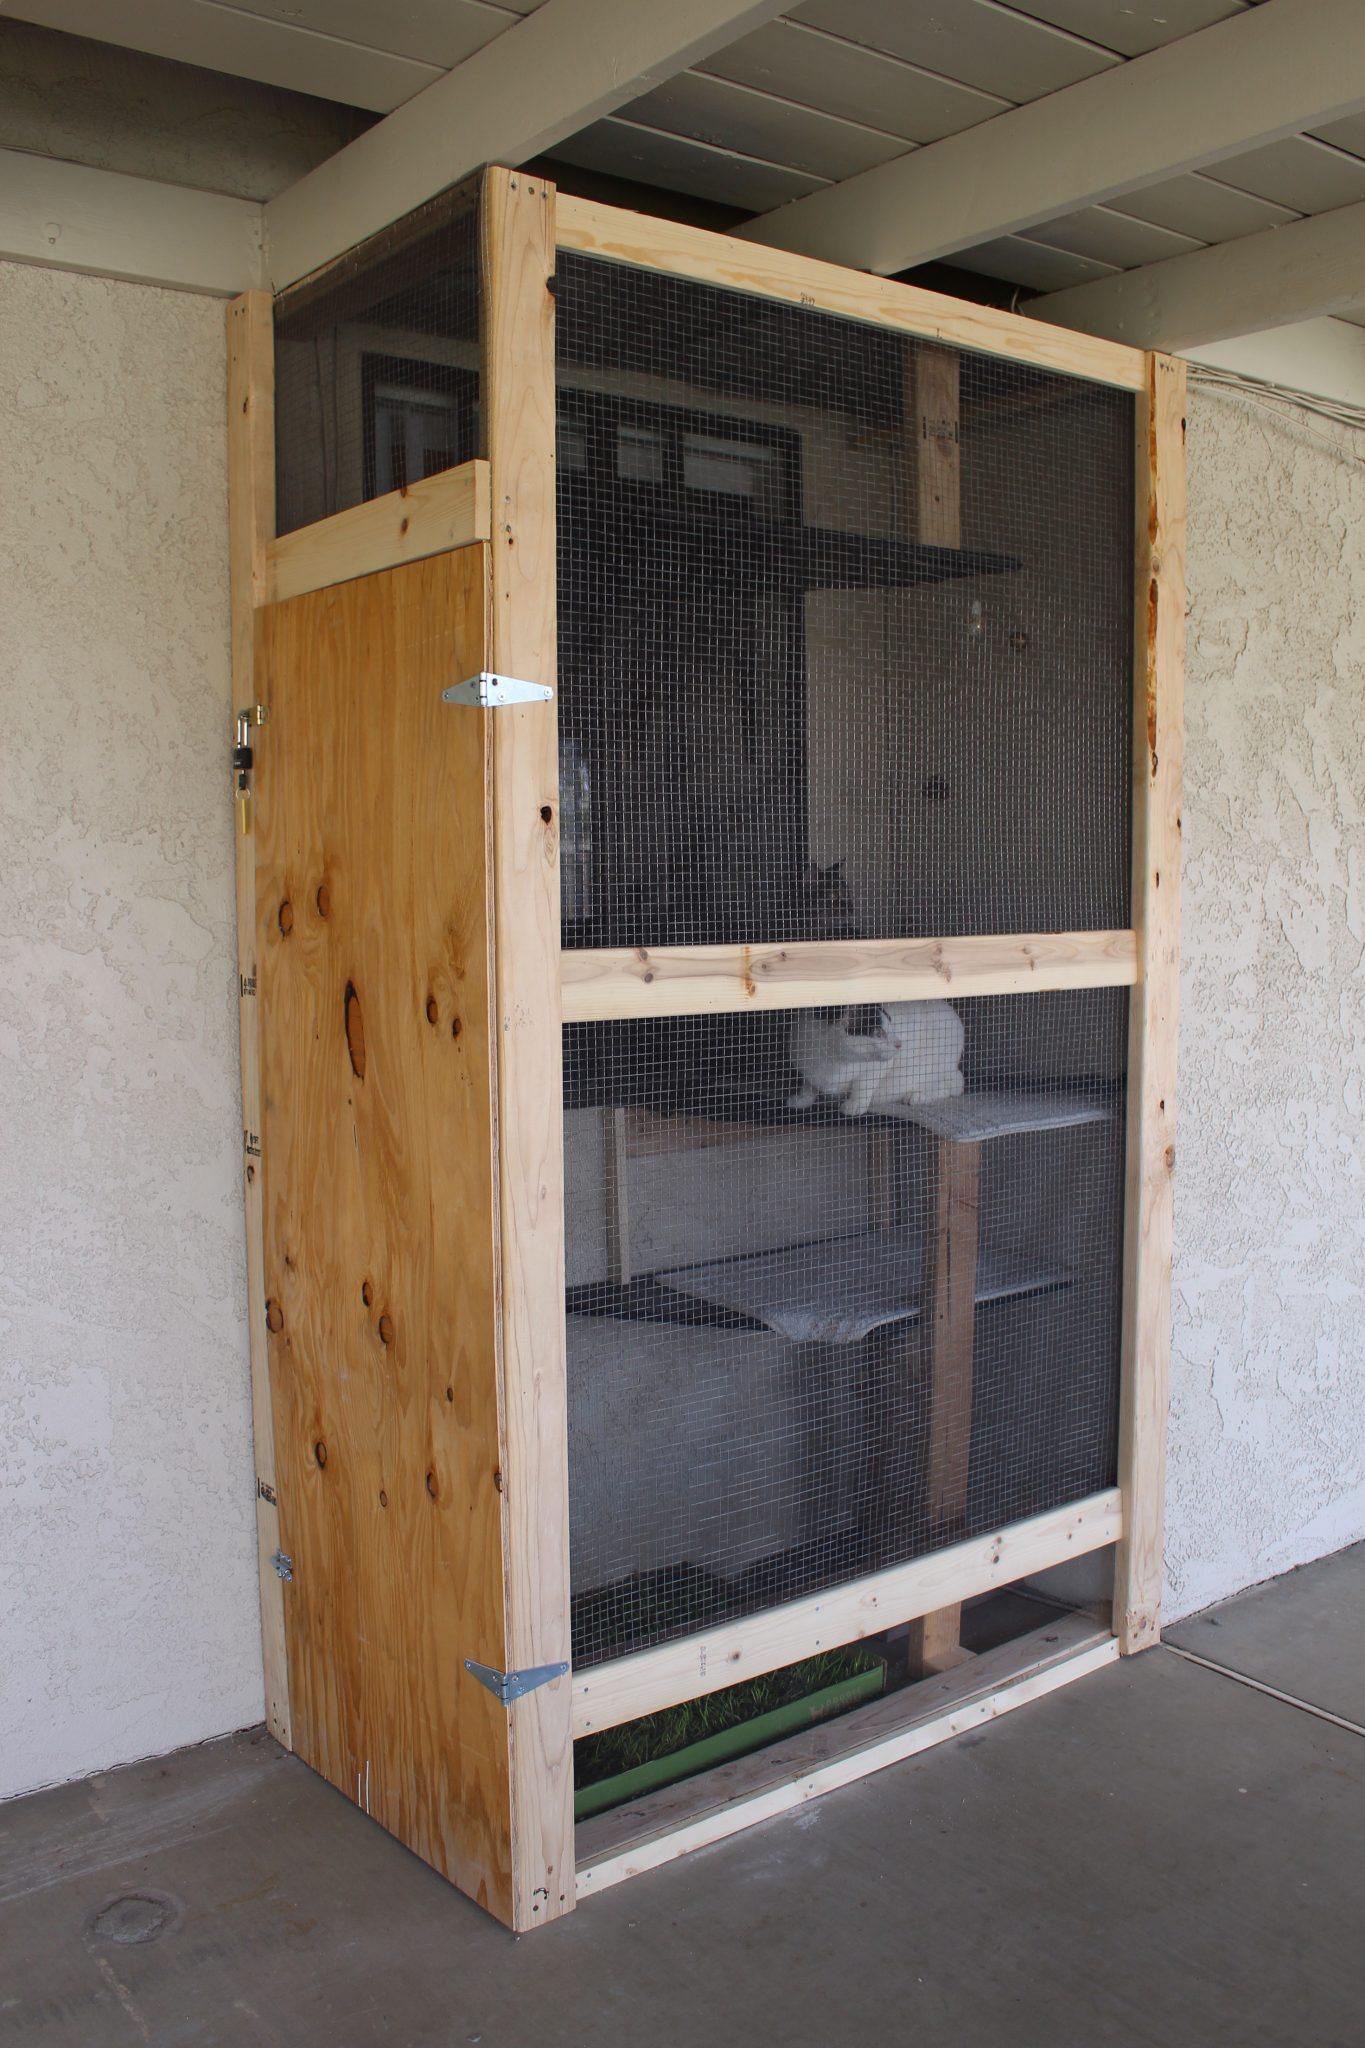 Catio extends from floor to ceiling